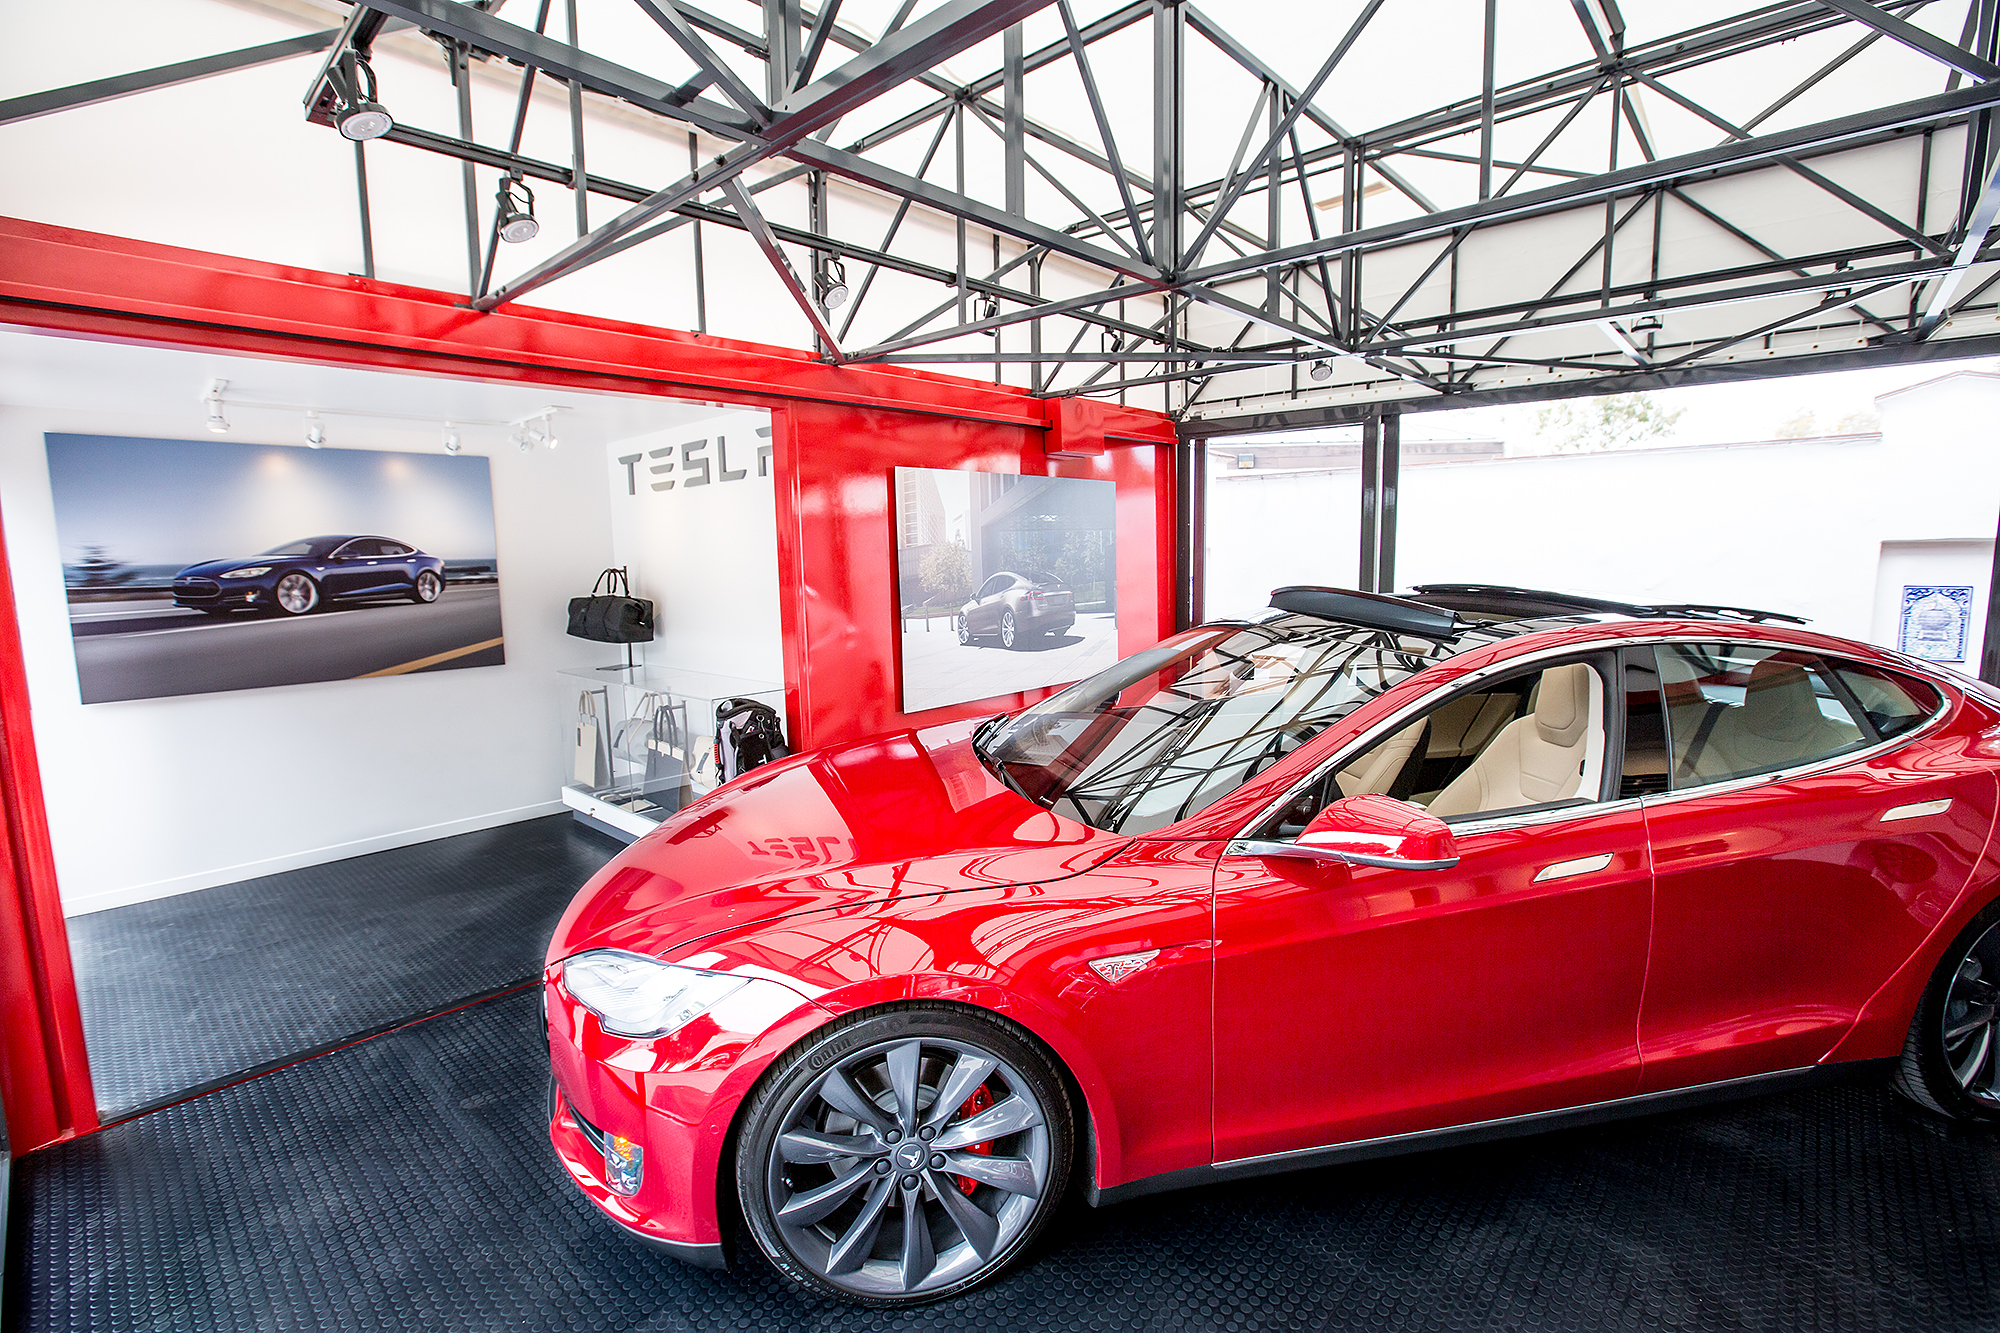 The History Of Tesla Motors And Its Electric Cars In Only